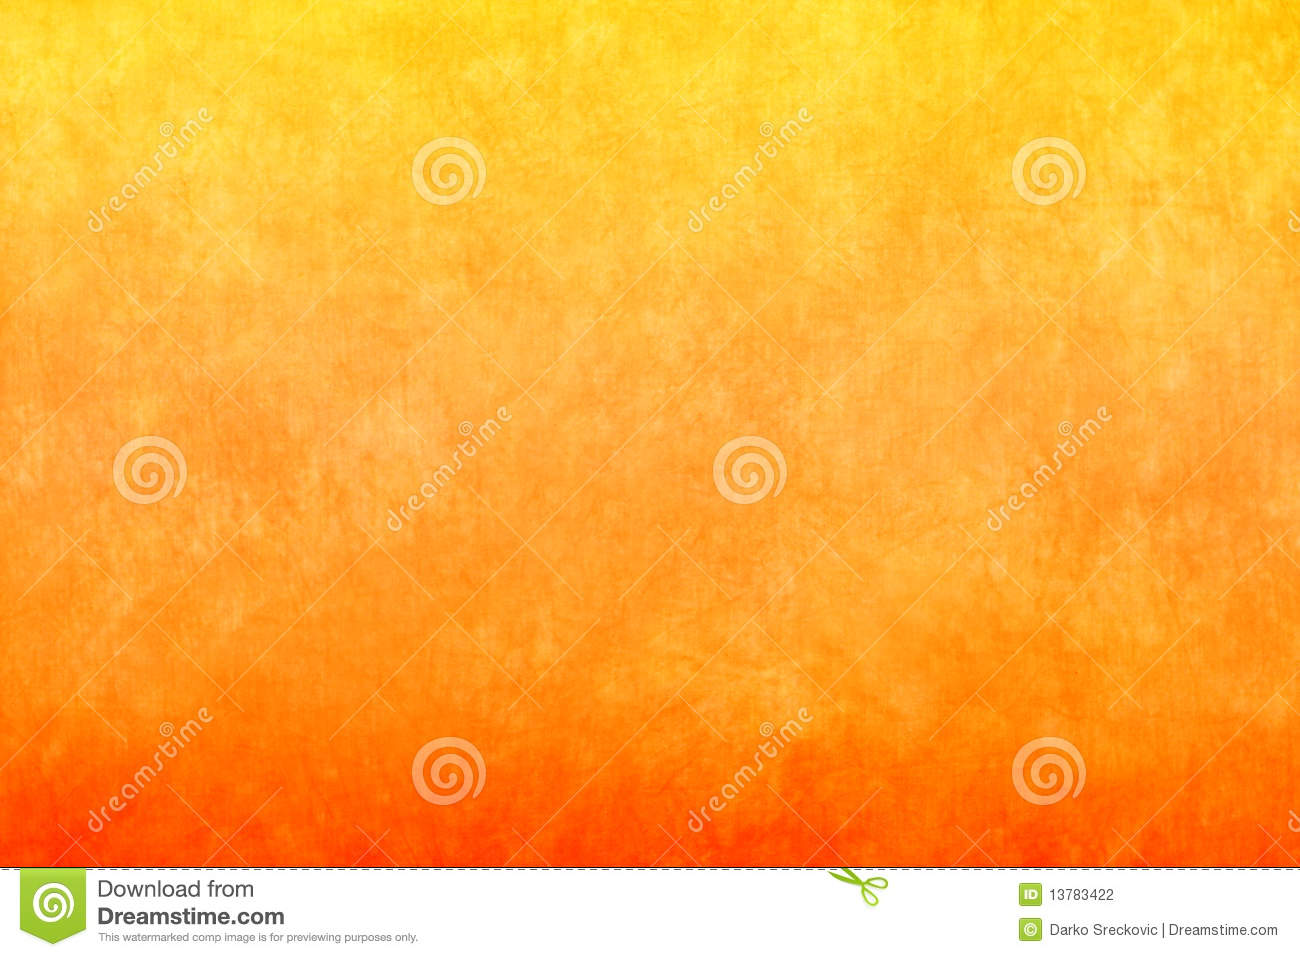 Yellow orange background